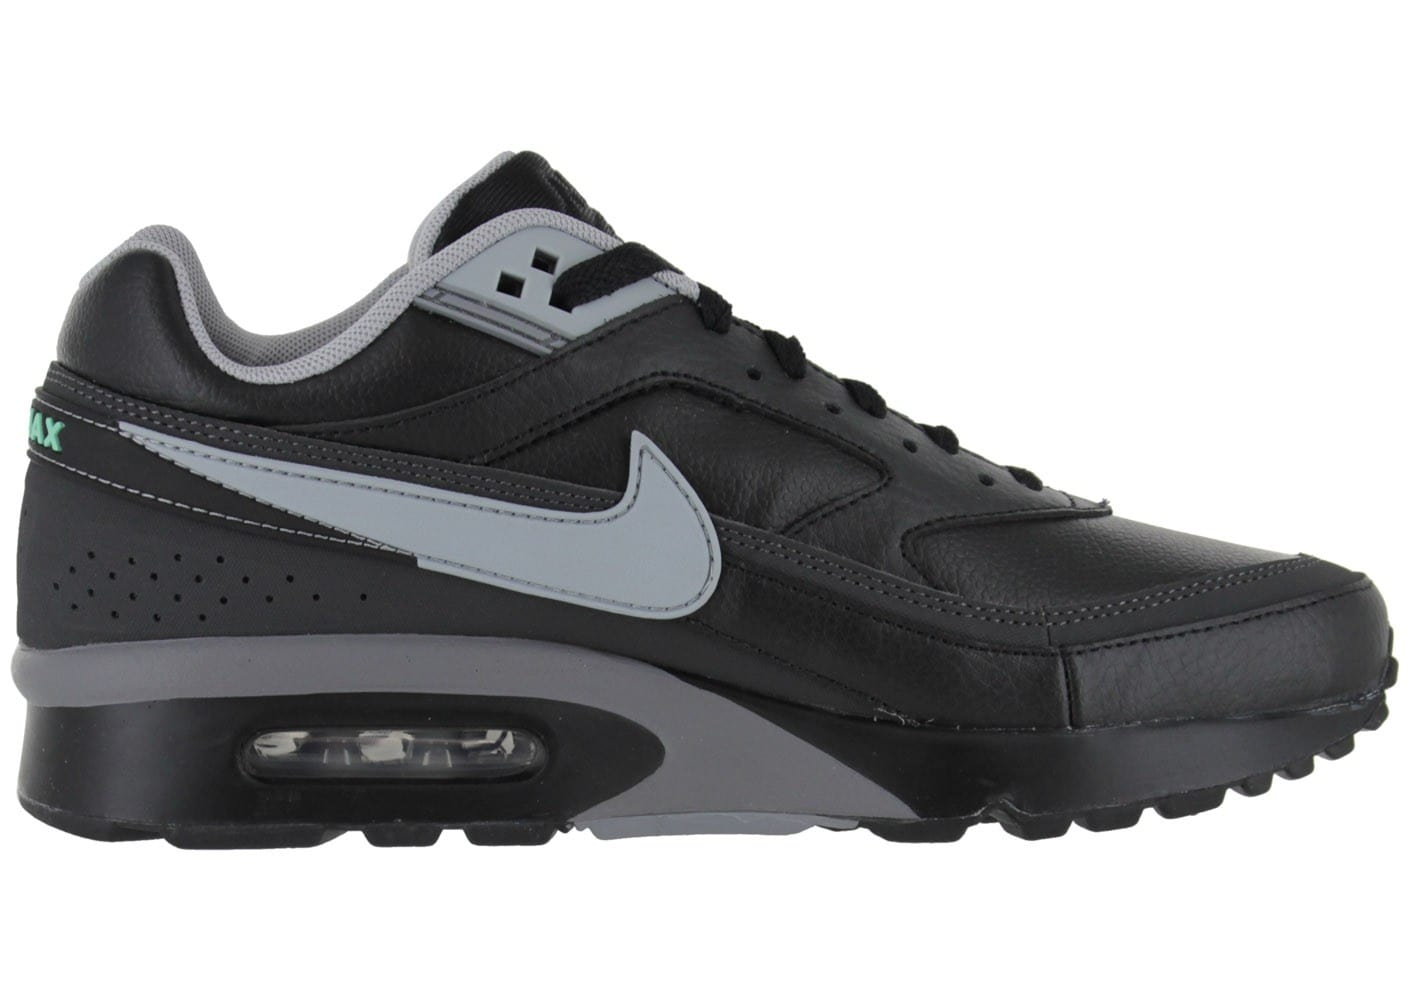 design intemporel 9f4ce 1c644 wholesale nike air max bw classic cuir 9eaef 9c96b